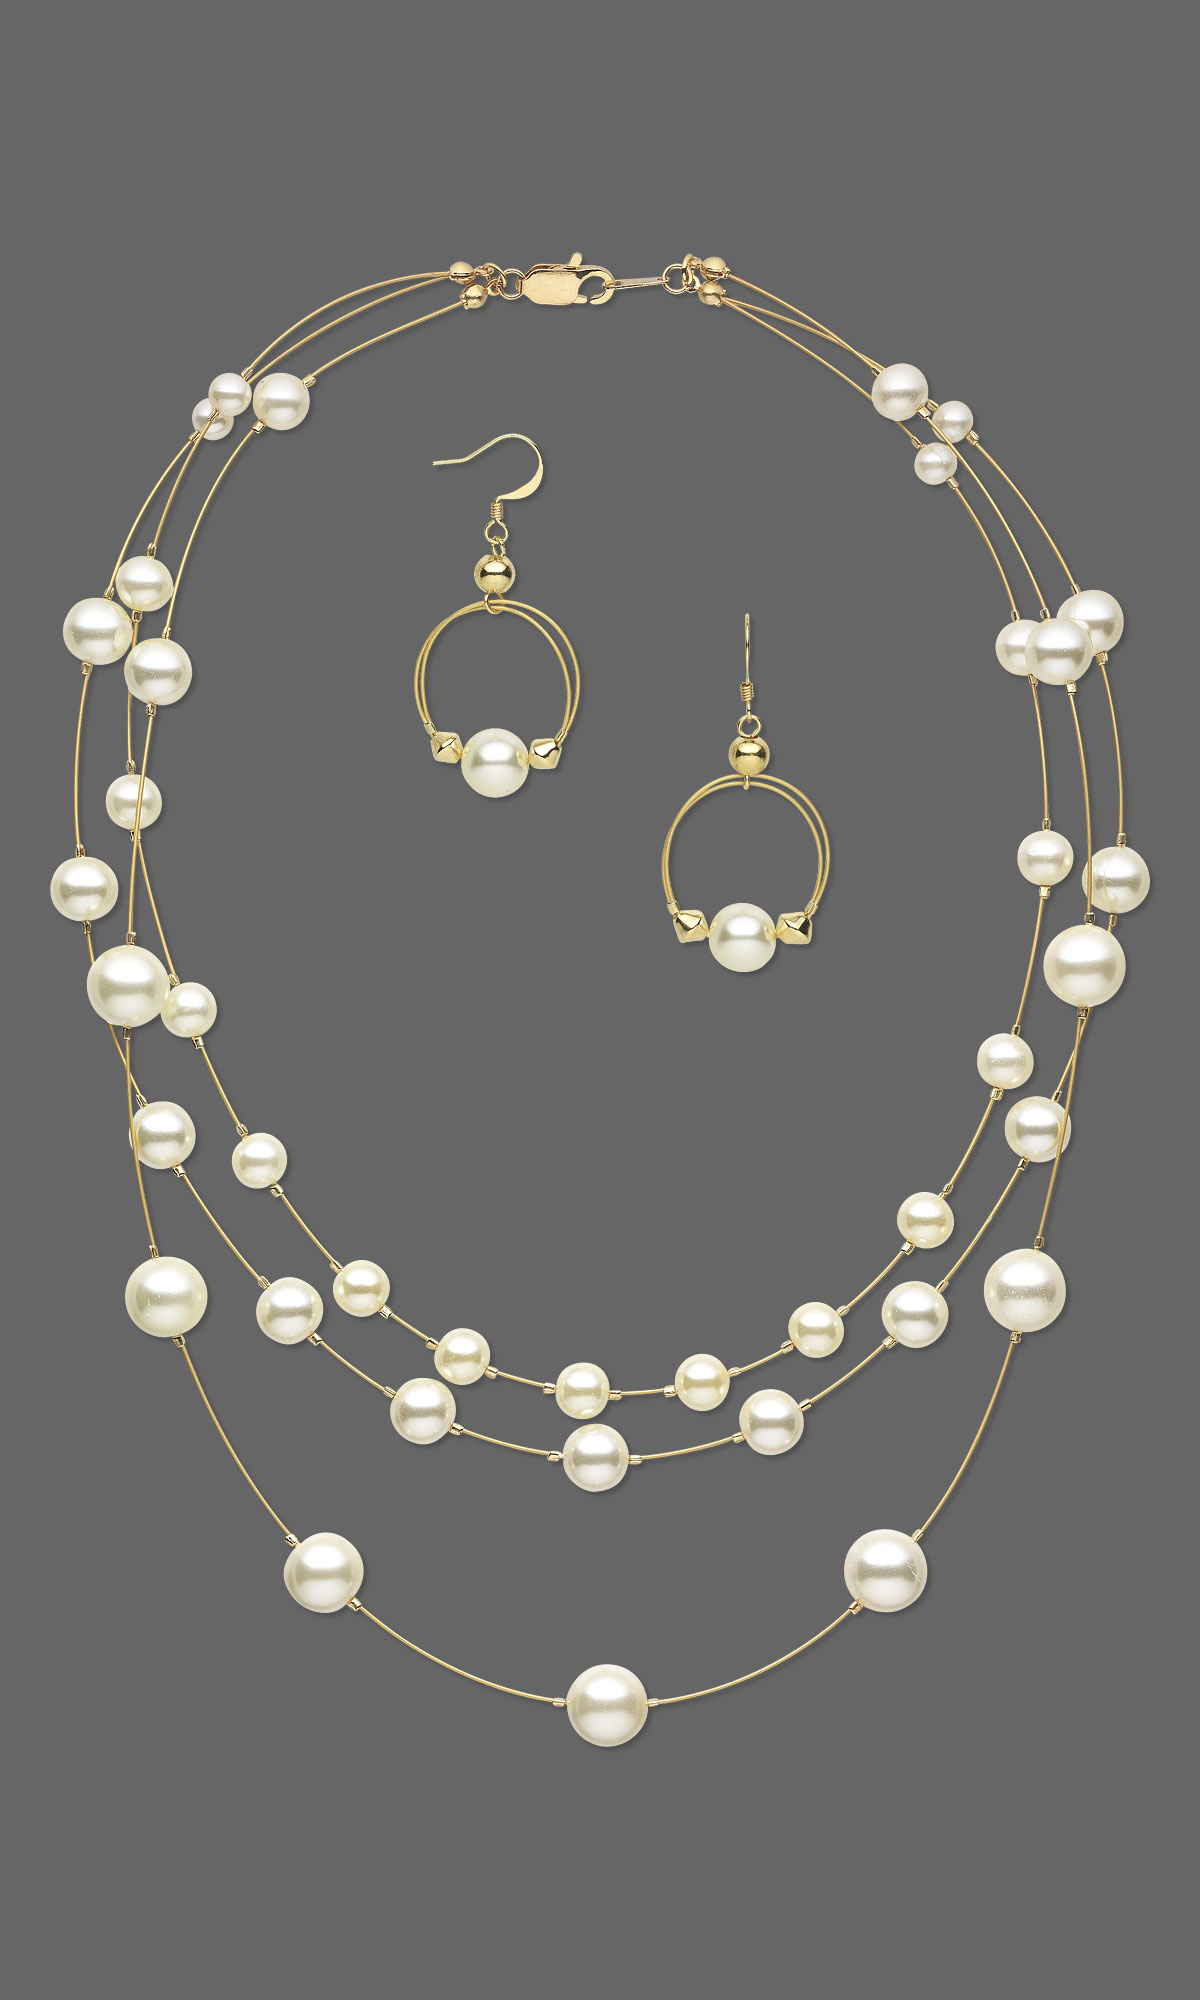 Jewelry Design Triple Strand Necklace And Earring Set